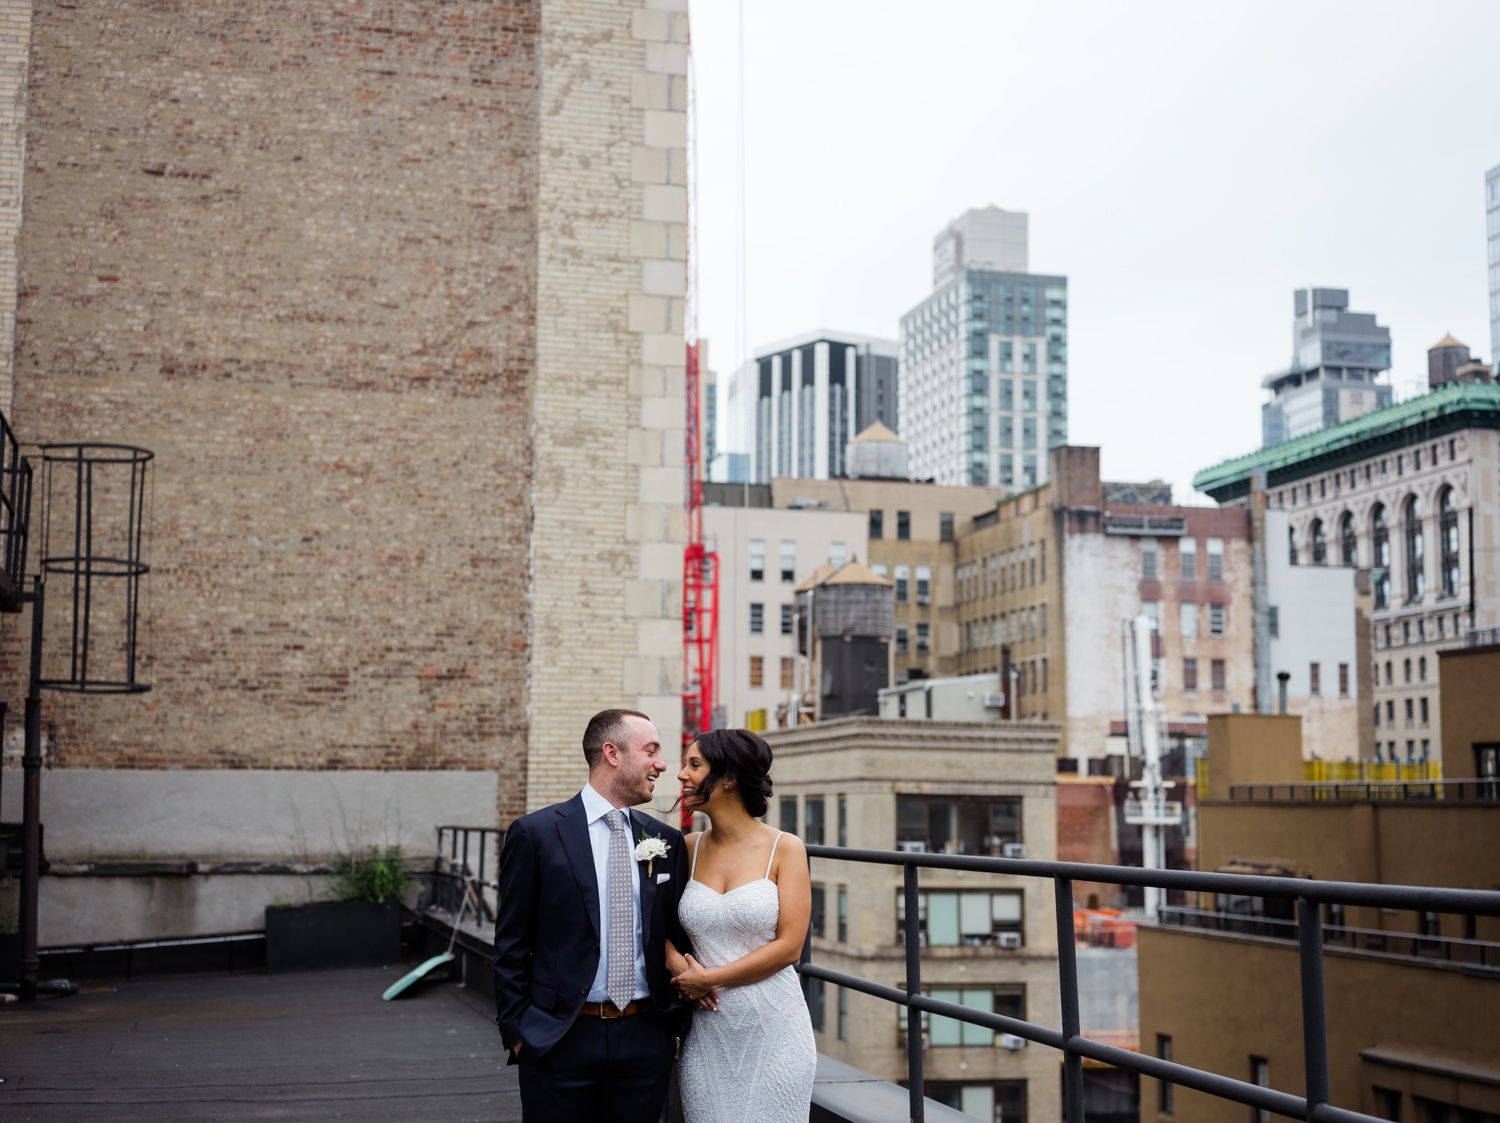 The Redbury Hotel, The Redbury Hotel Wedding, The Redbury Hotel Wedding Photos, Manhattan Wedding, Manhattan Wedding Photographer, Best NYC Wedding Photographer, New York City Wedding, Manhattan Wedding Portraits, NYC Rooftop Wedding Portraits, Pregnant Bride,